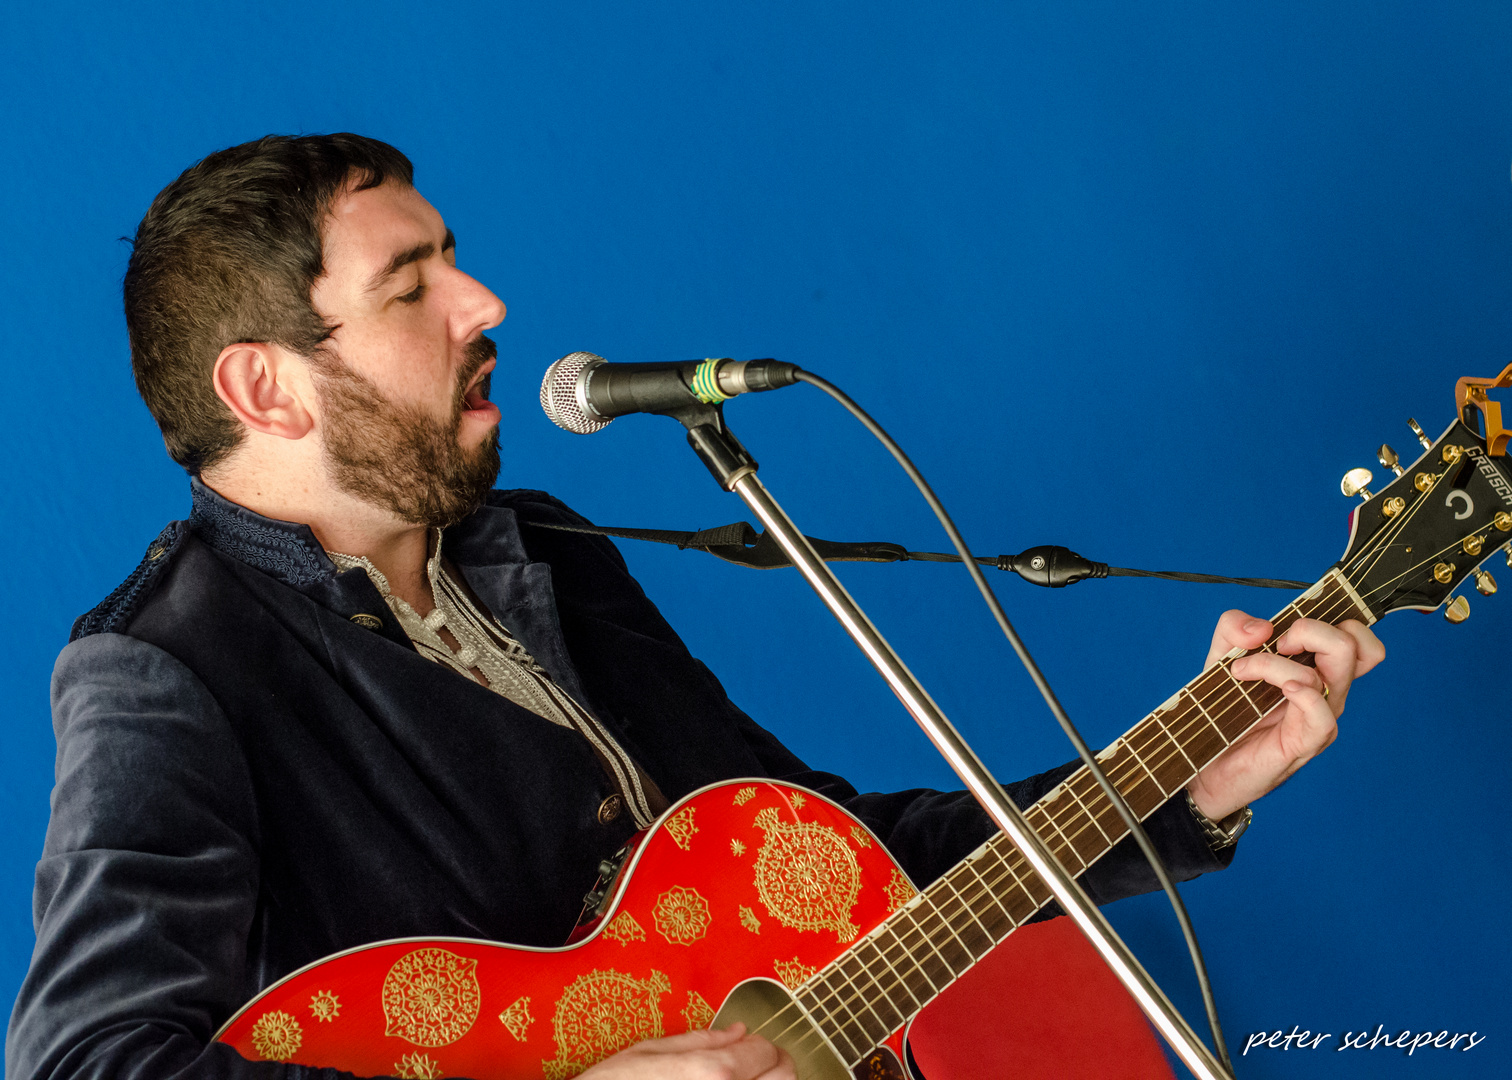 Paul Doherty (The Vals) 8.9.2014 in Dortmund